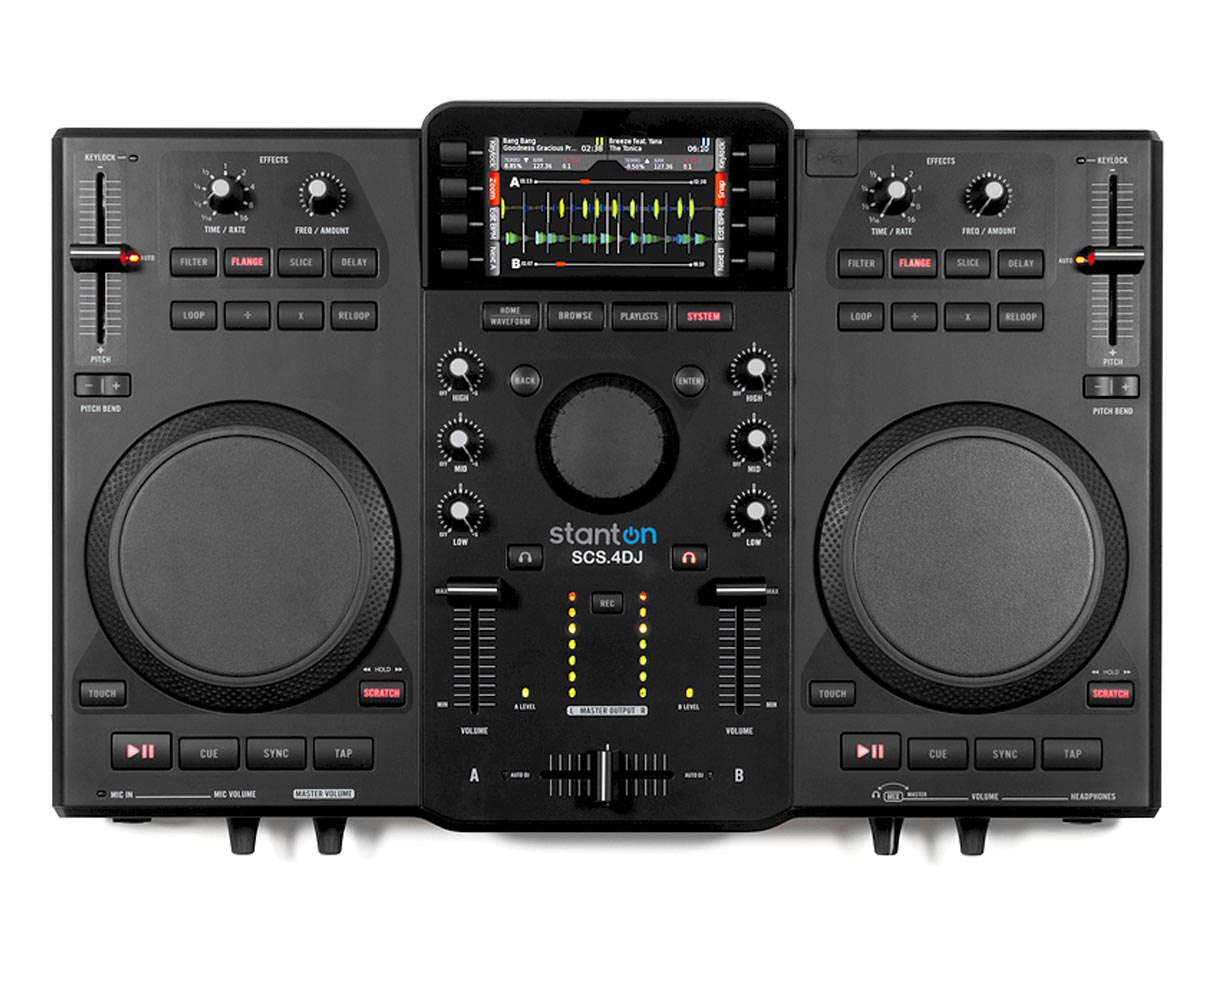 https://www.proaudiostar.com/media/catalog/product//s/t/stn-scs4dj_1.jpg